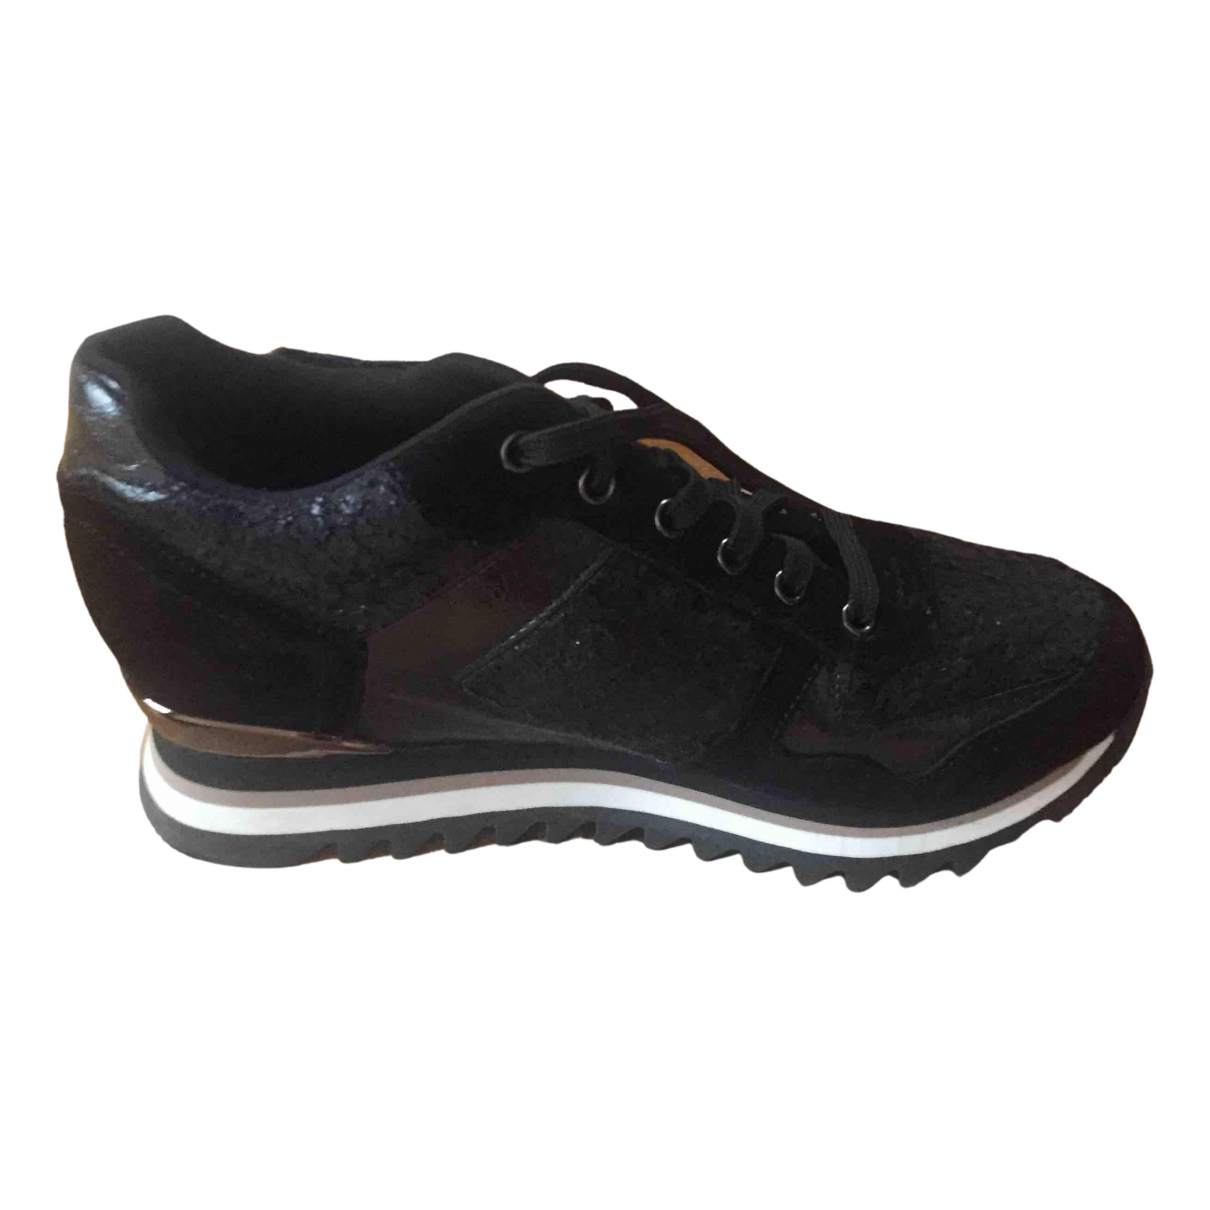 Gioseppo \N Black Leather Trainers for Women 38 EU